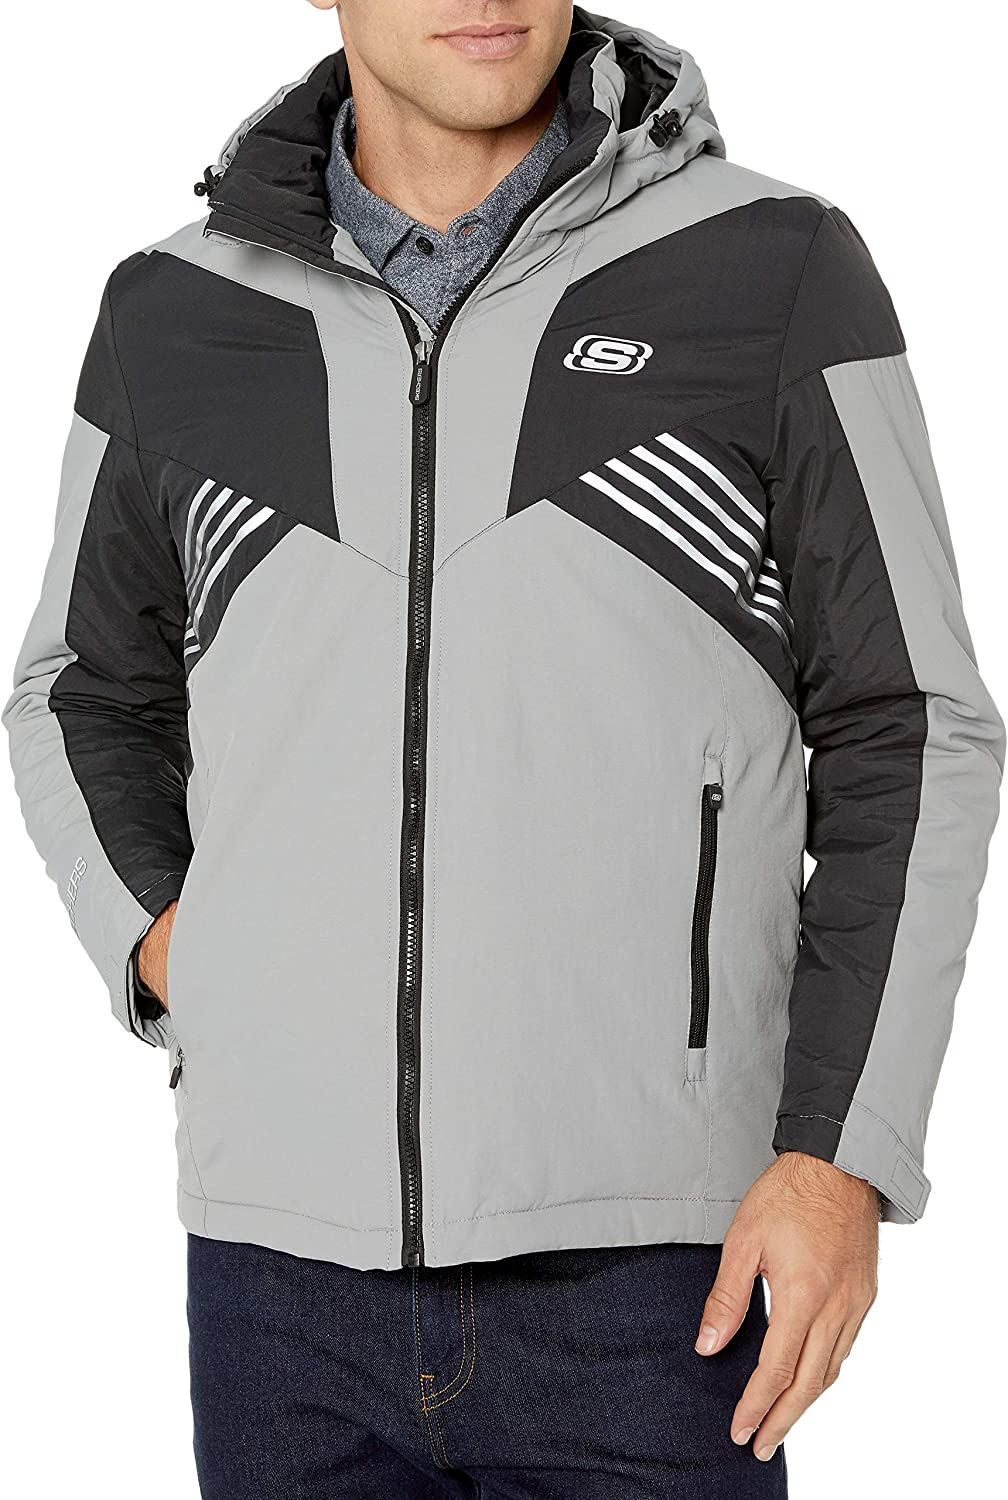 Skechers Men's Midweight Rain Jacket with Removable Hood